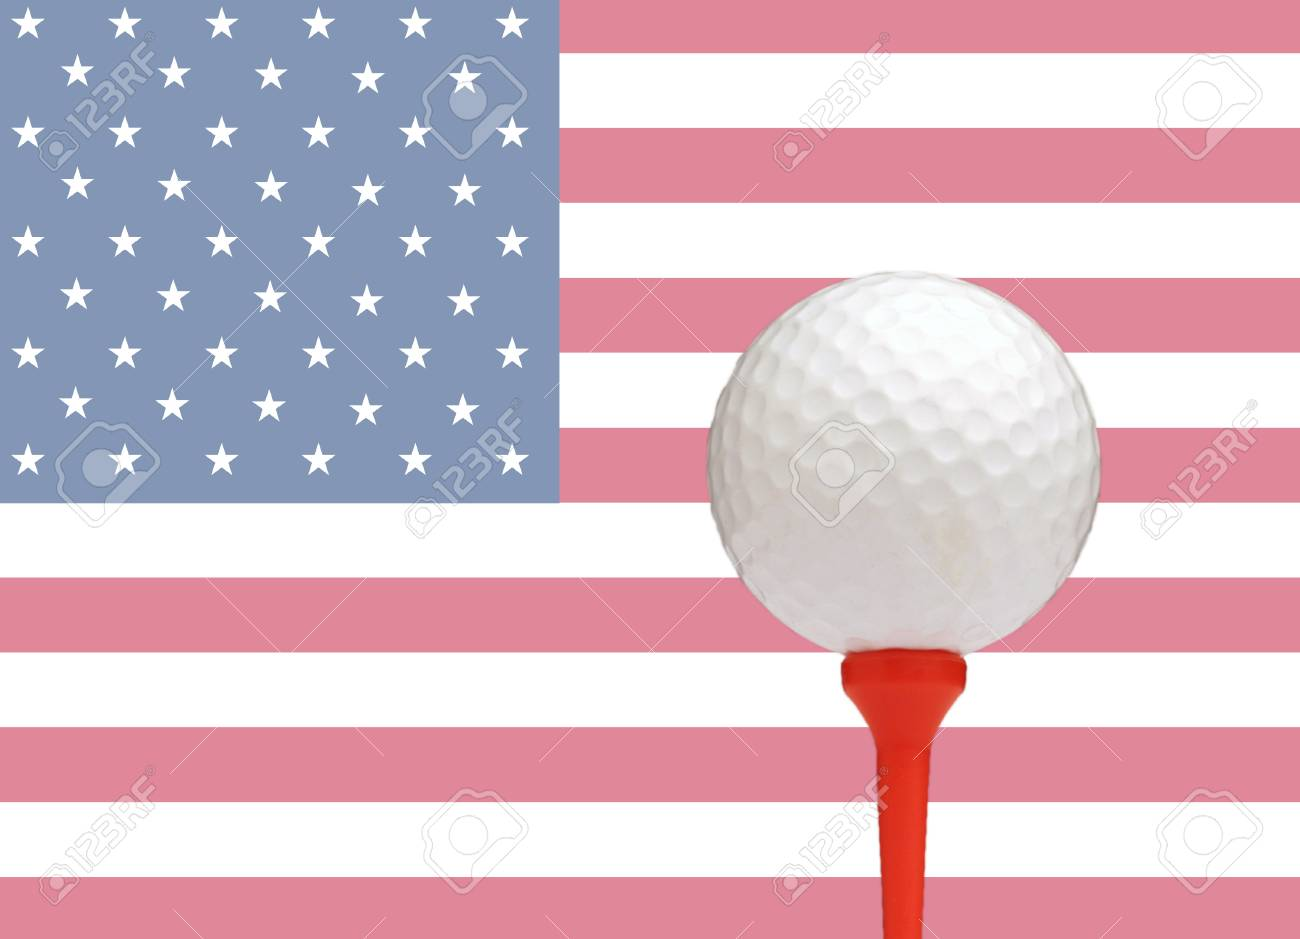 golf ball on tee in front of the flag of the united states of